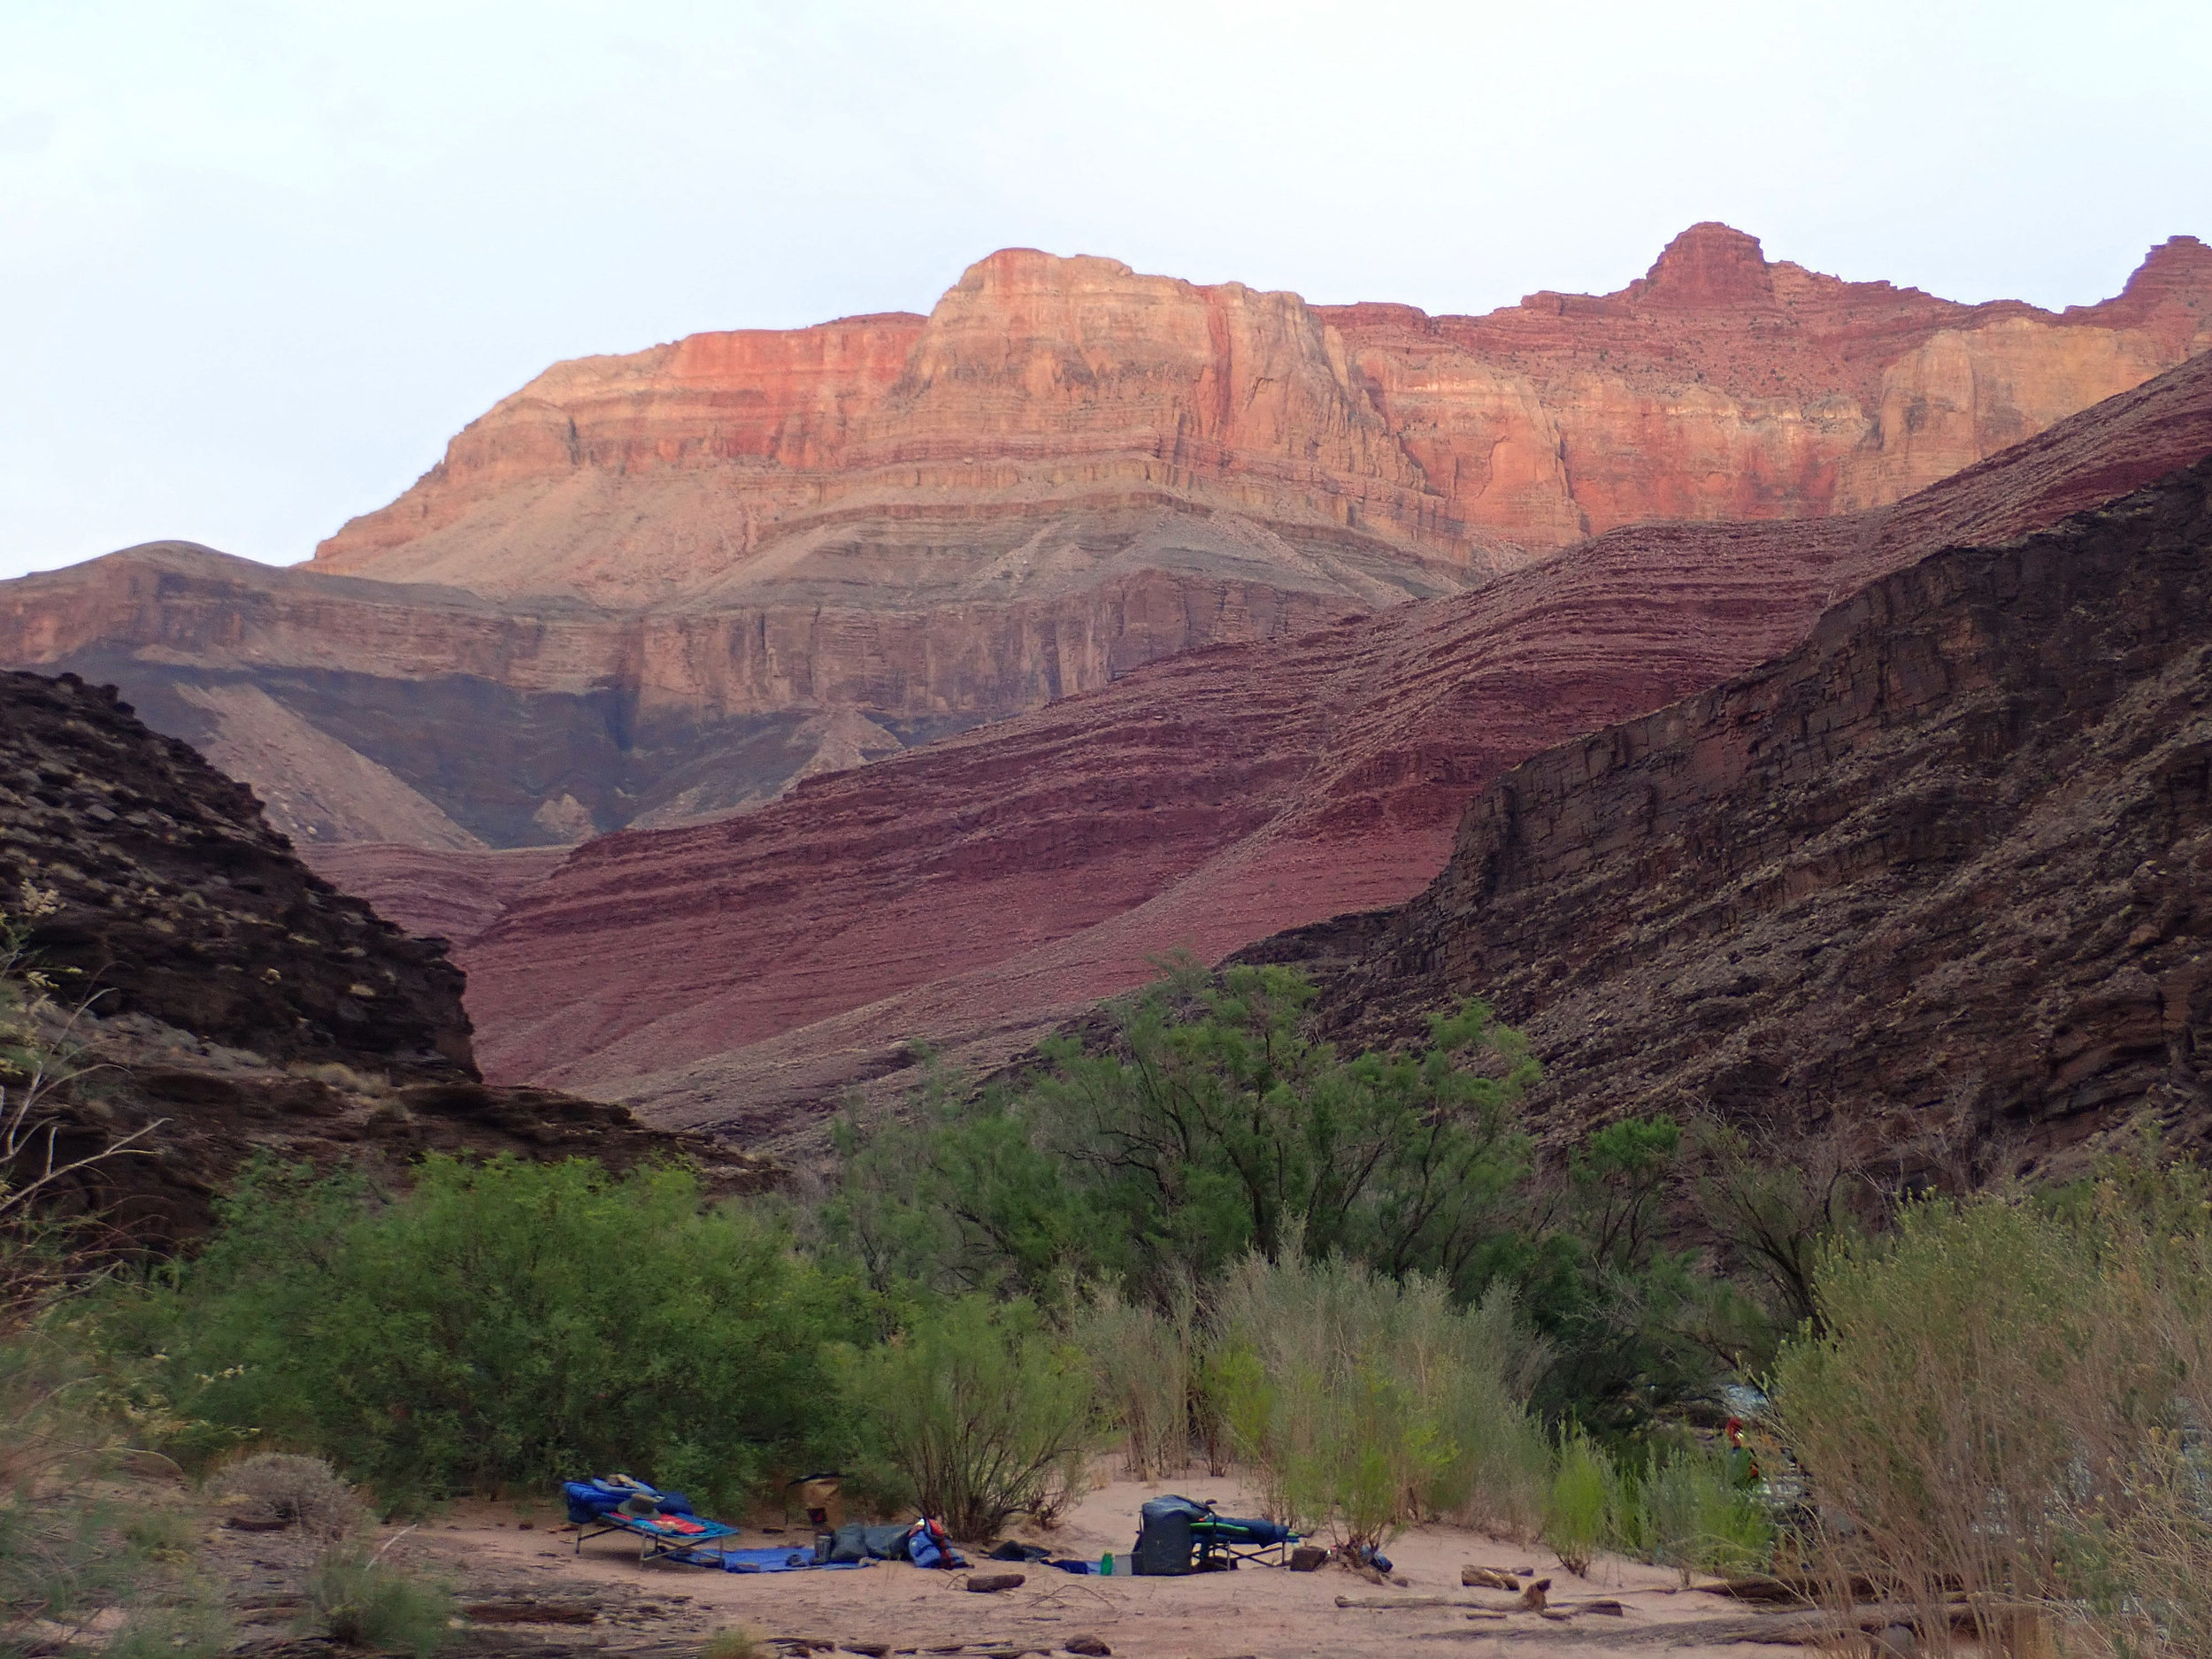 A layered view of completely different colored canyon walls!